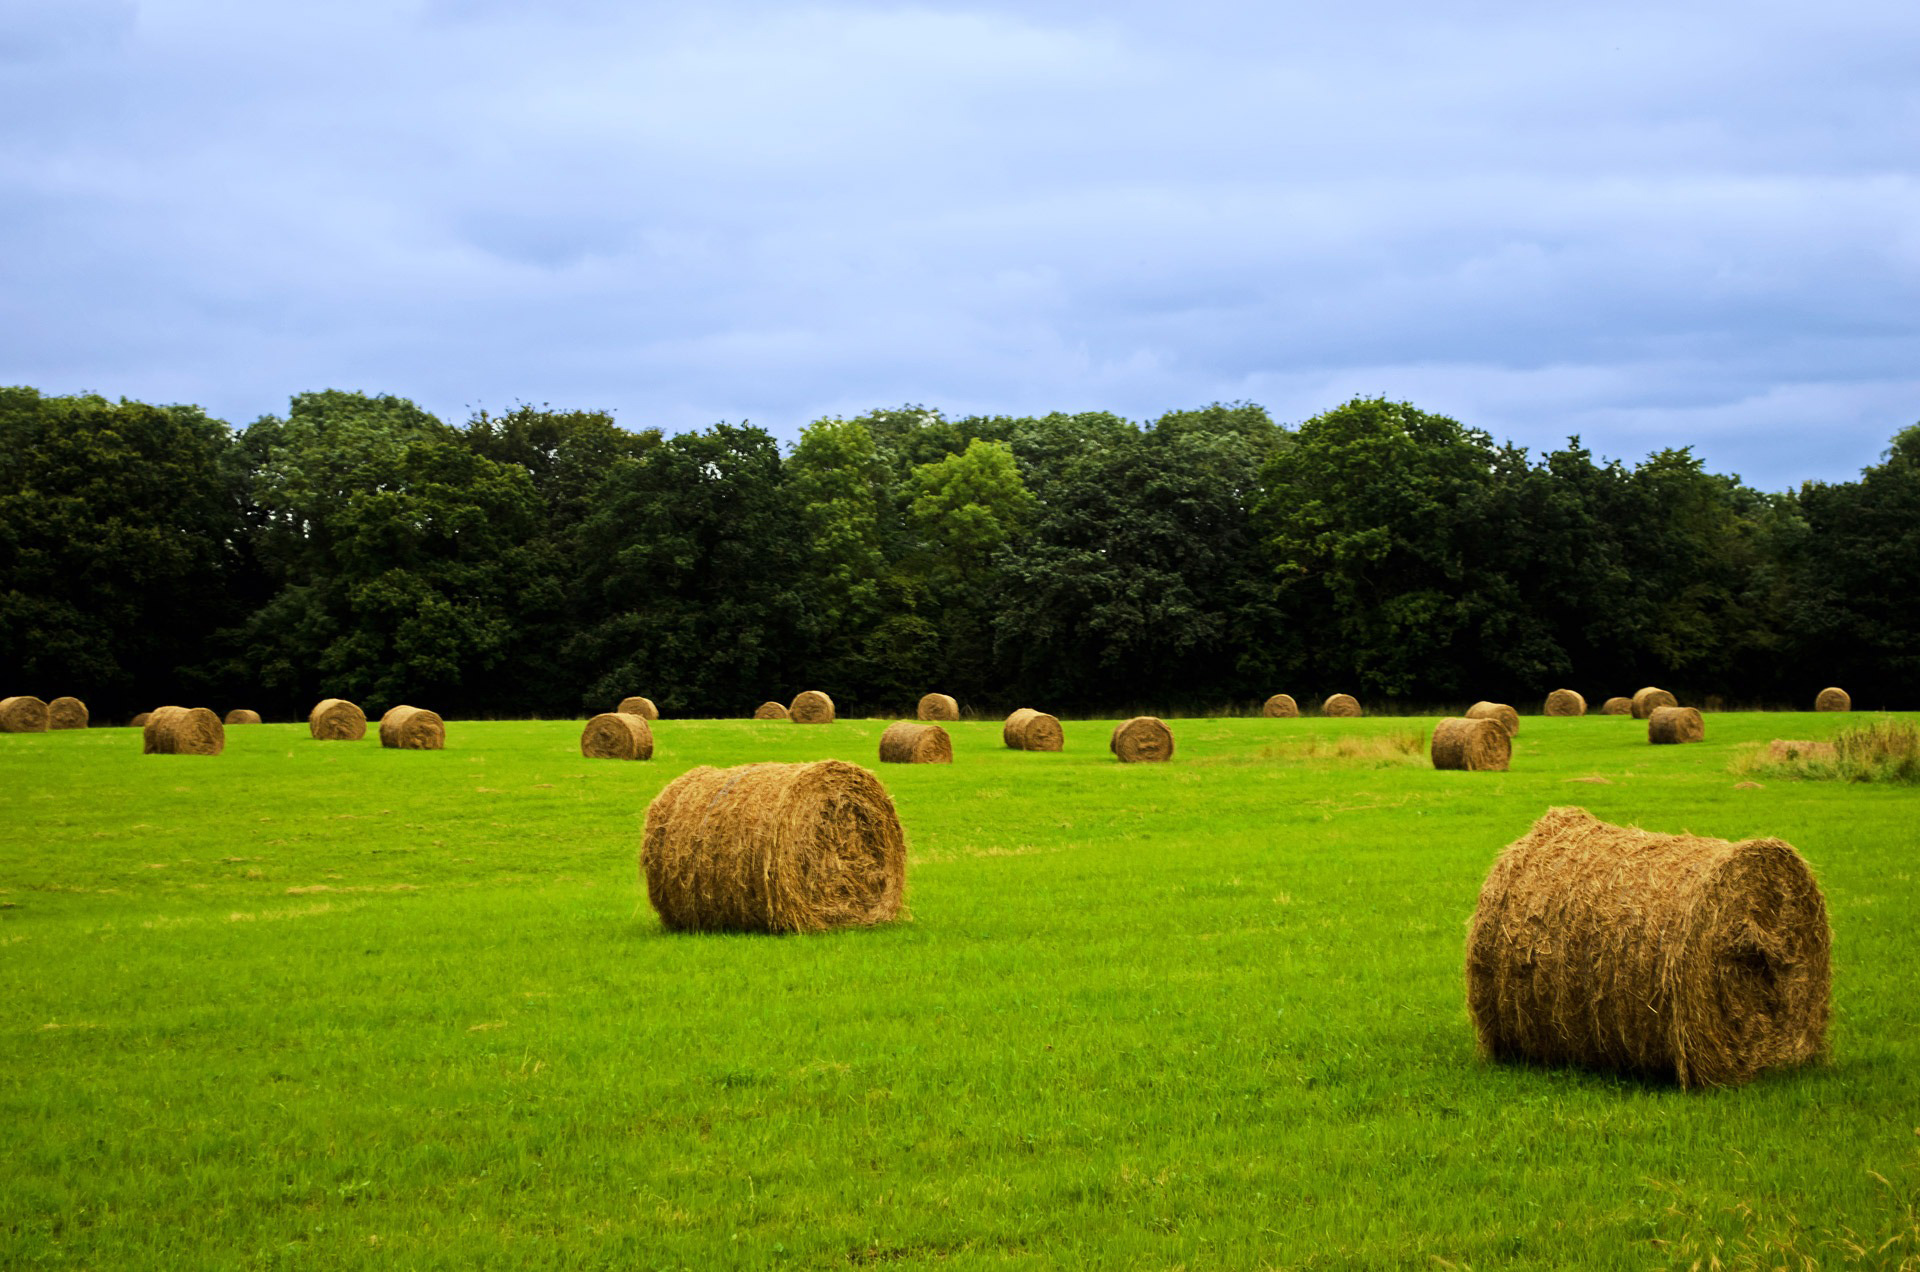 harvested_field_with_straw_207868